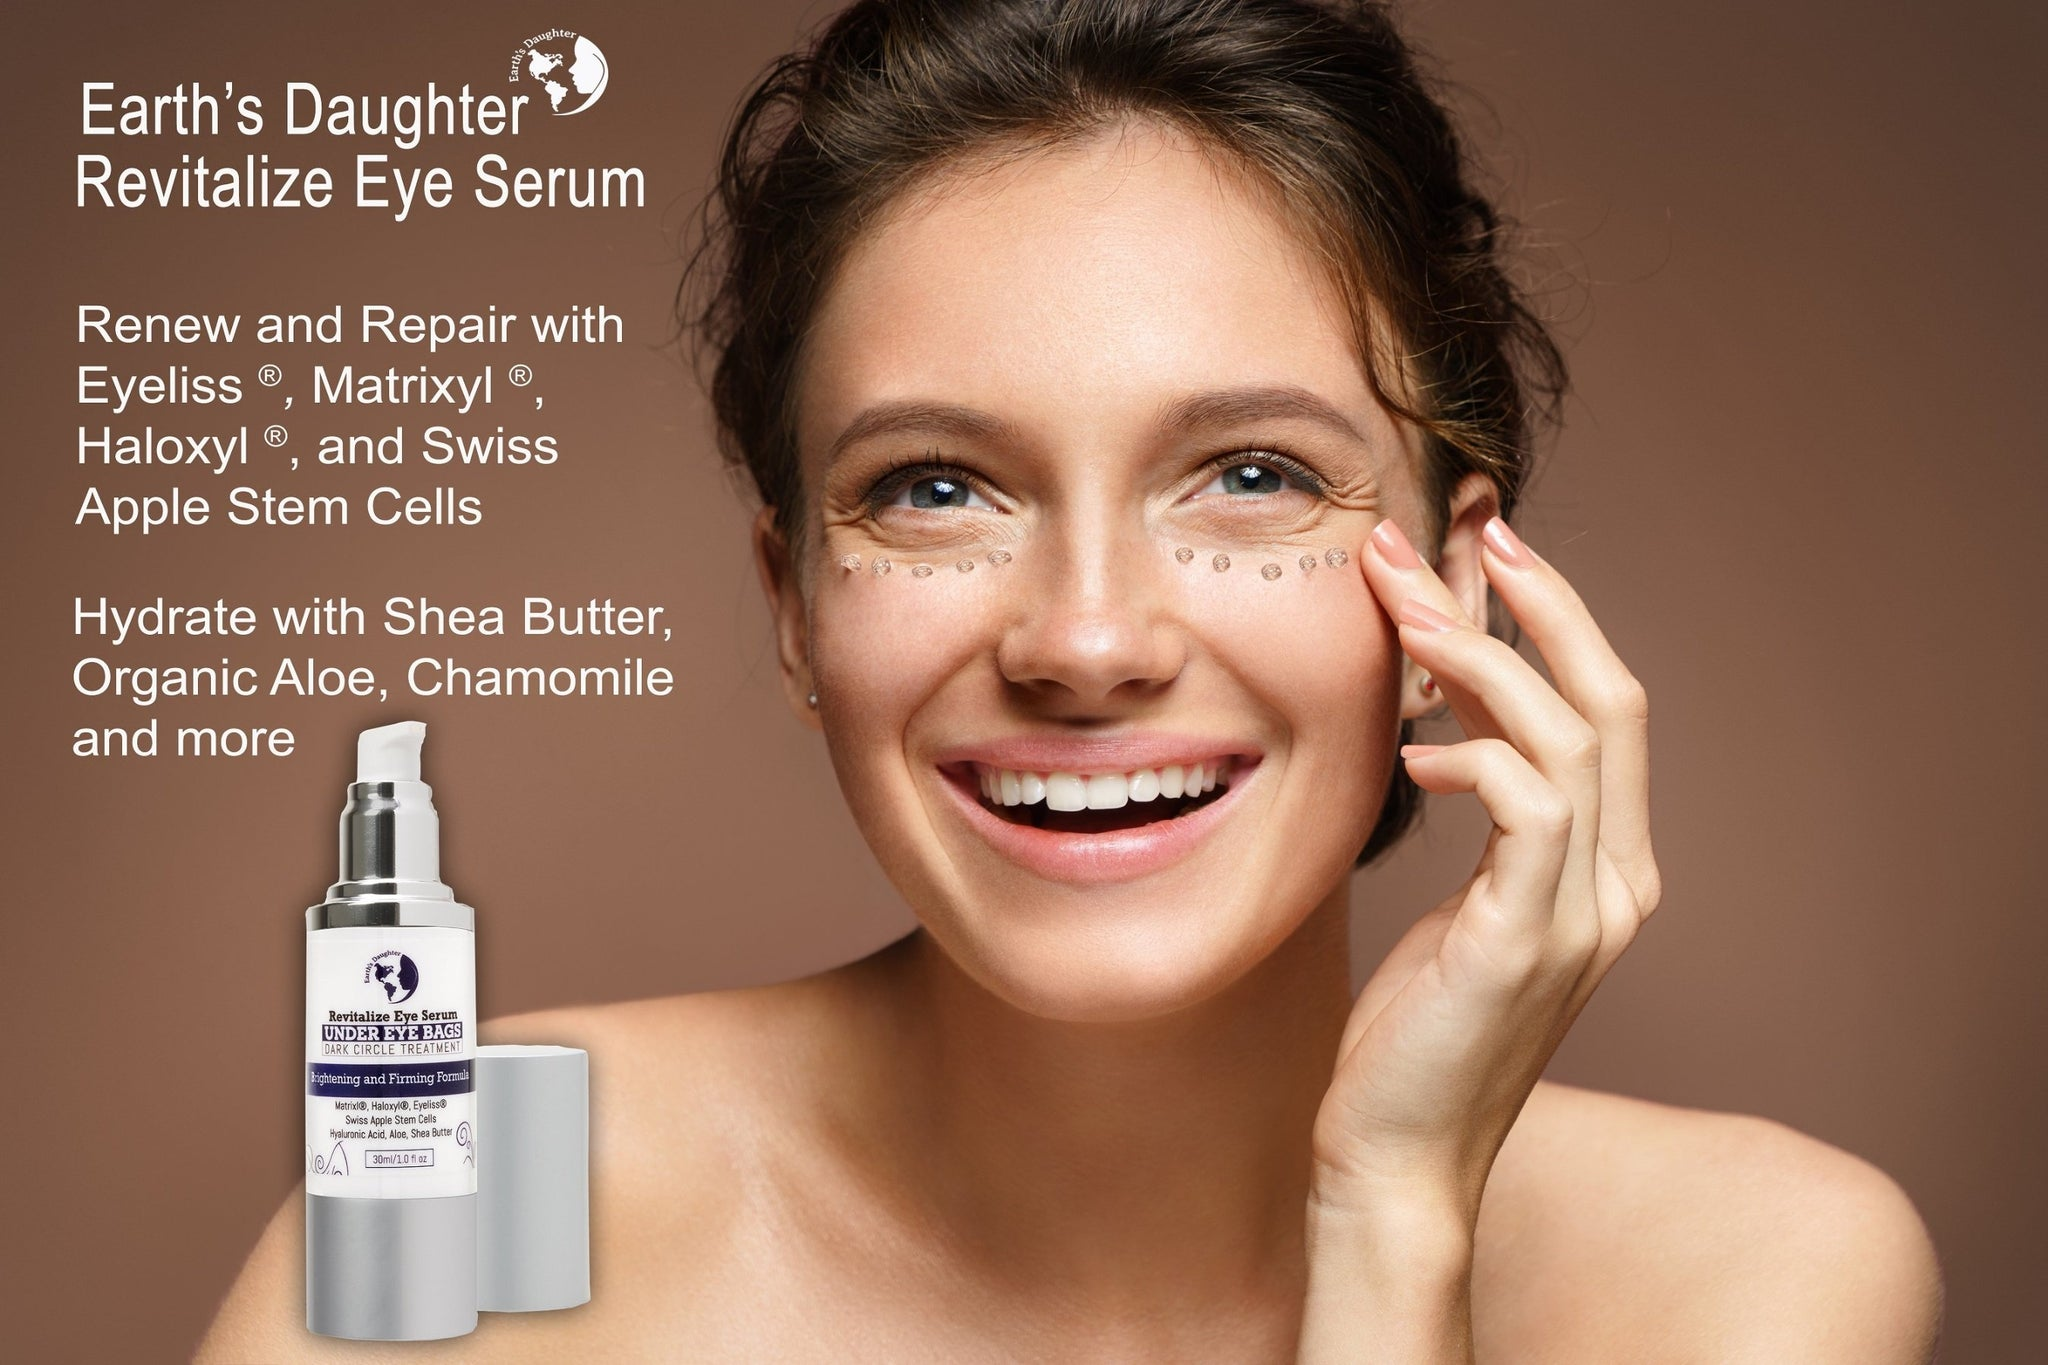 Earth's Daughter Revitalize Eye Serum with Matrixyl, Haloxyl